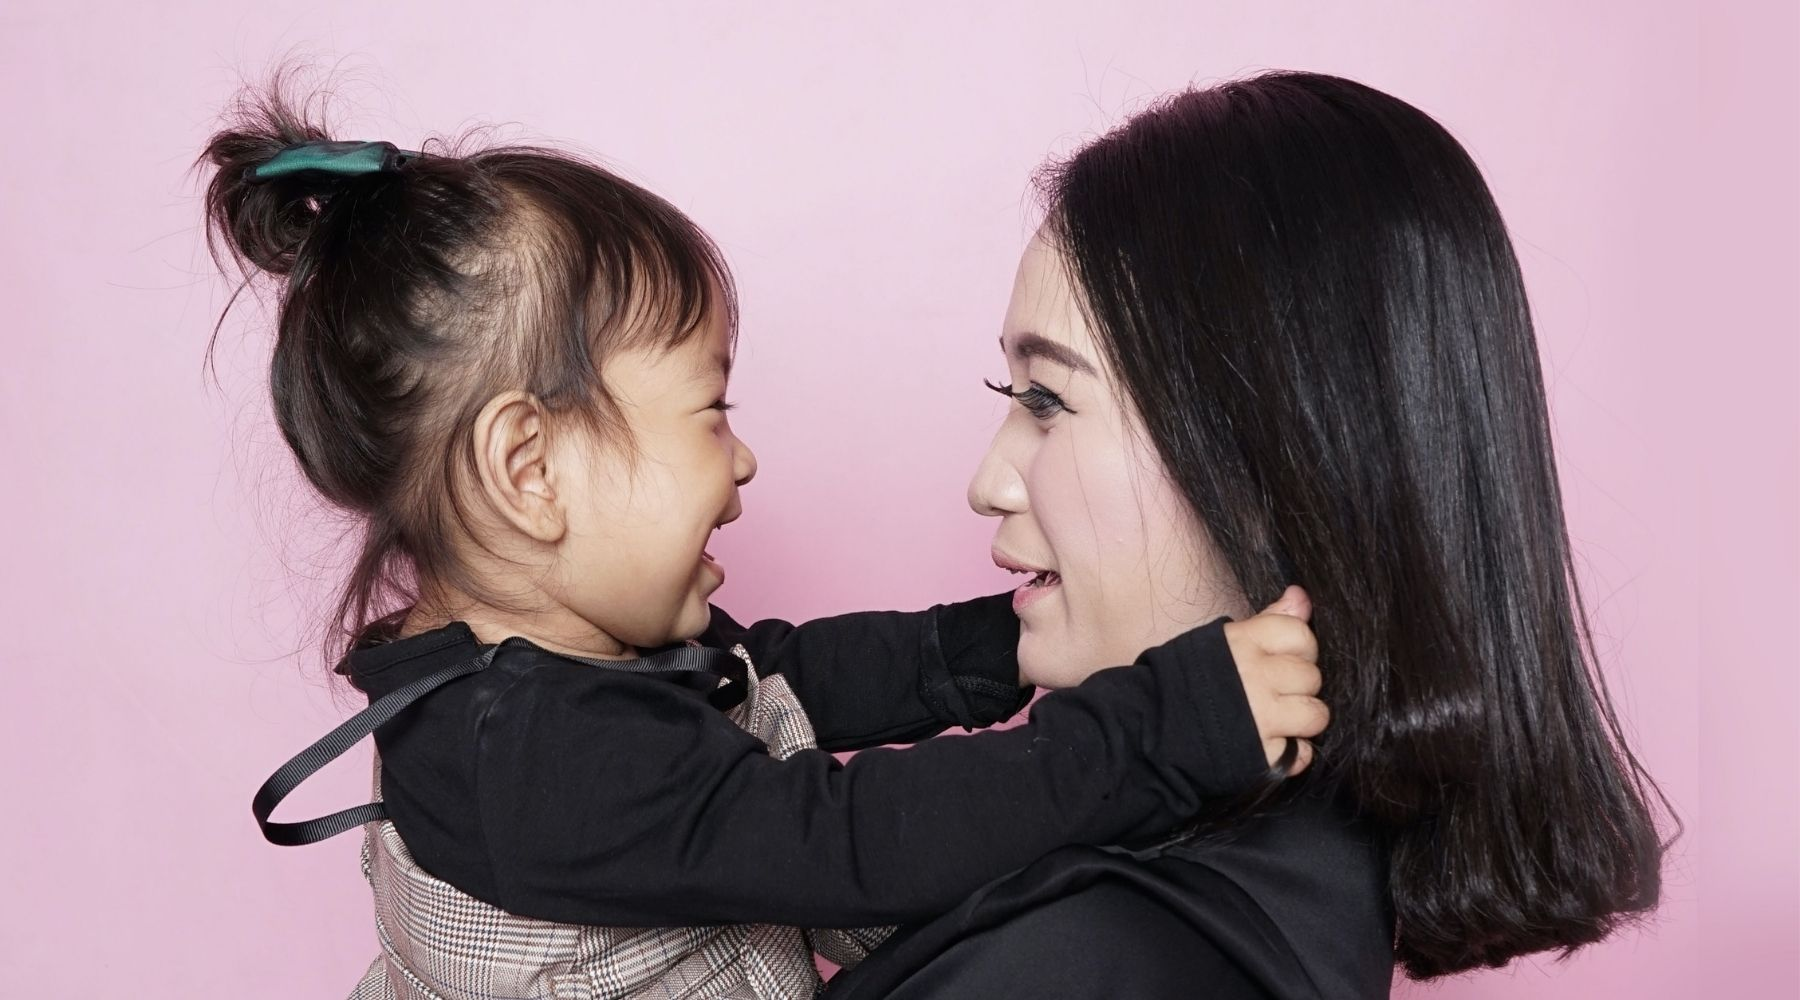 Mother and daughter smiling at each other against a pink background